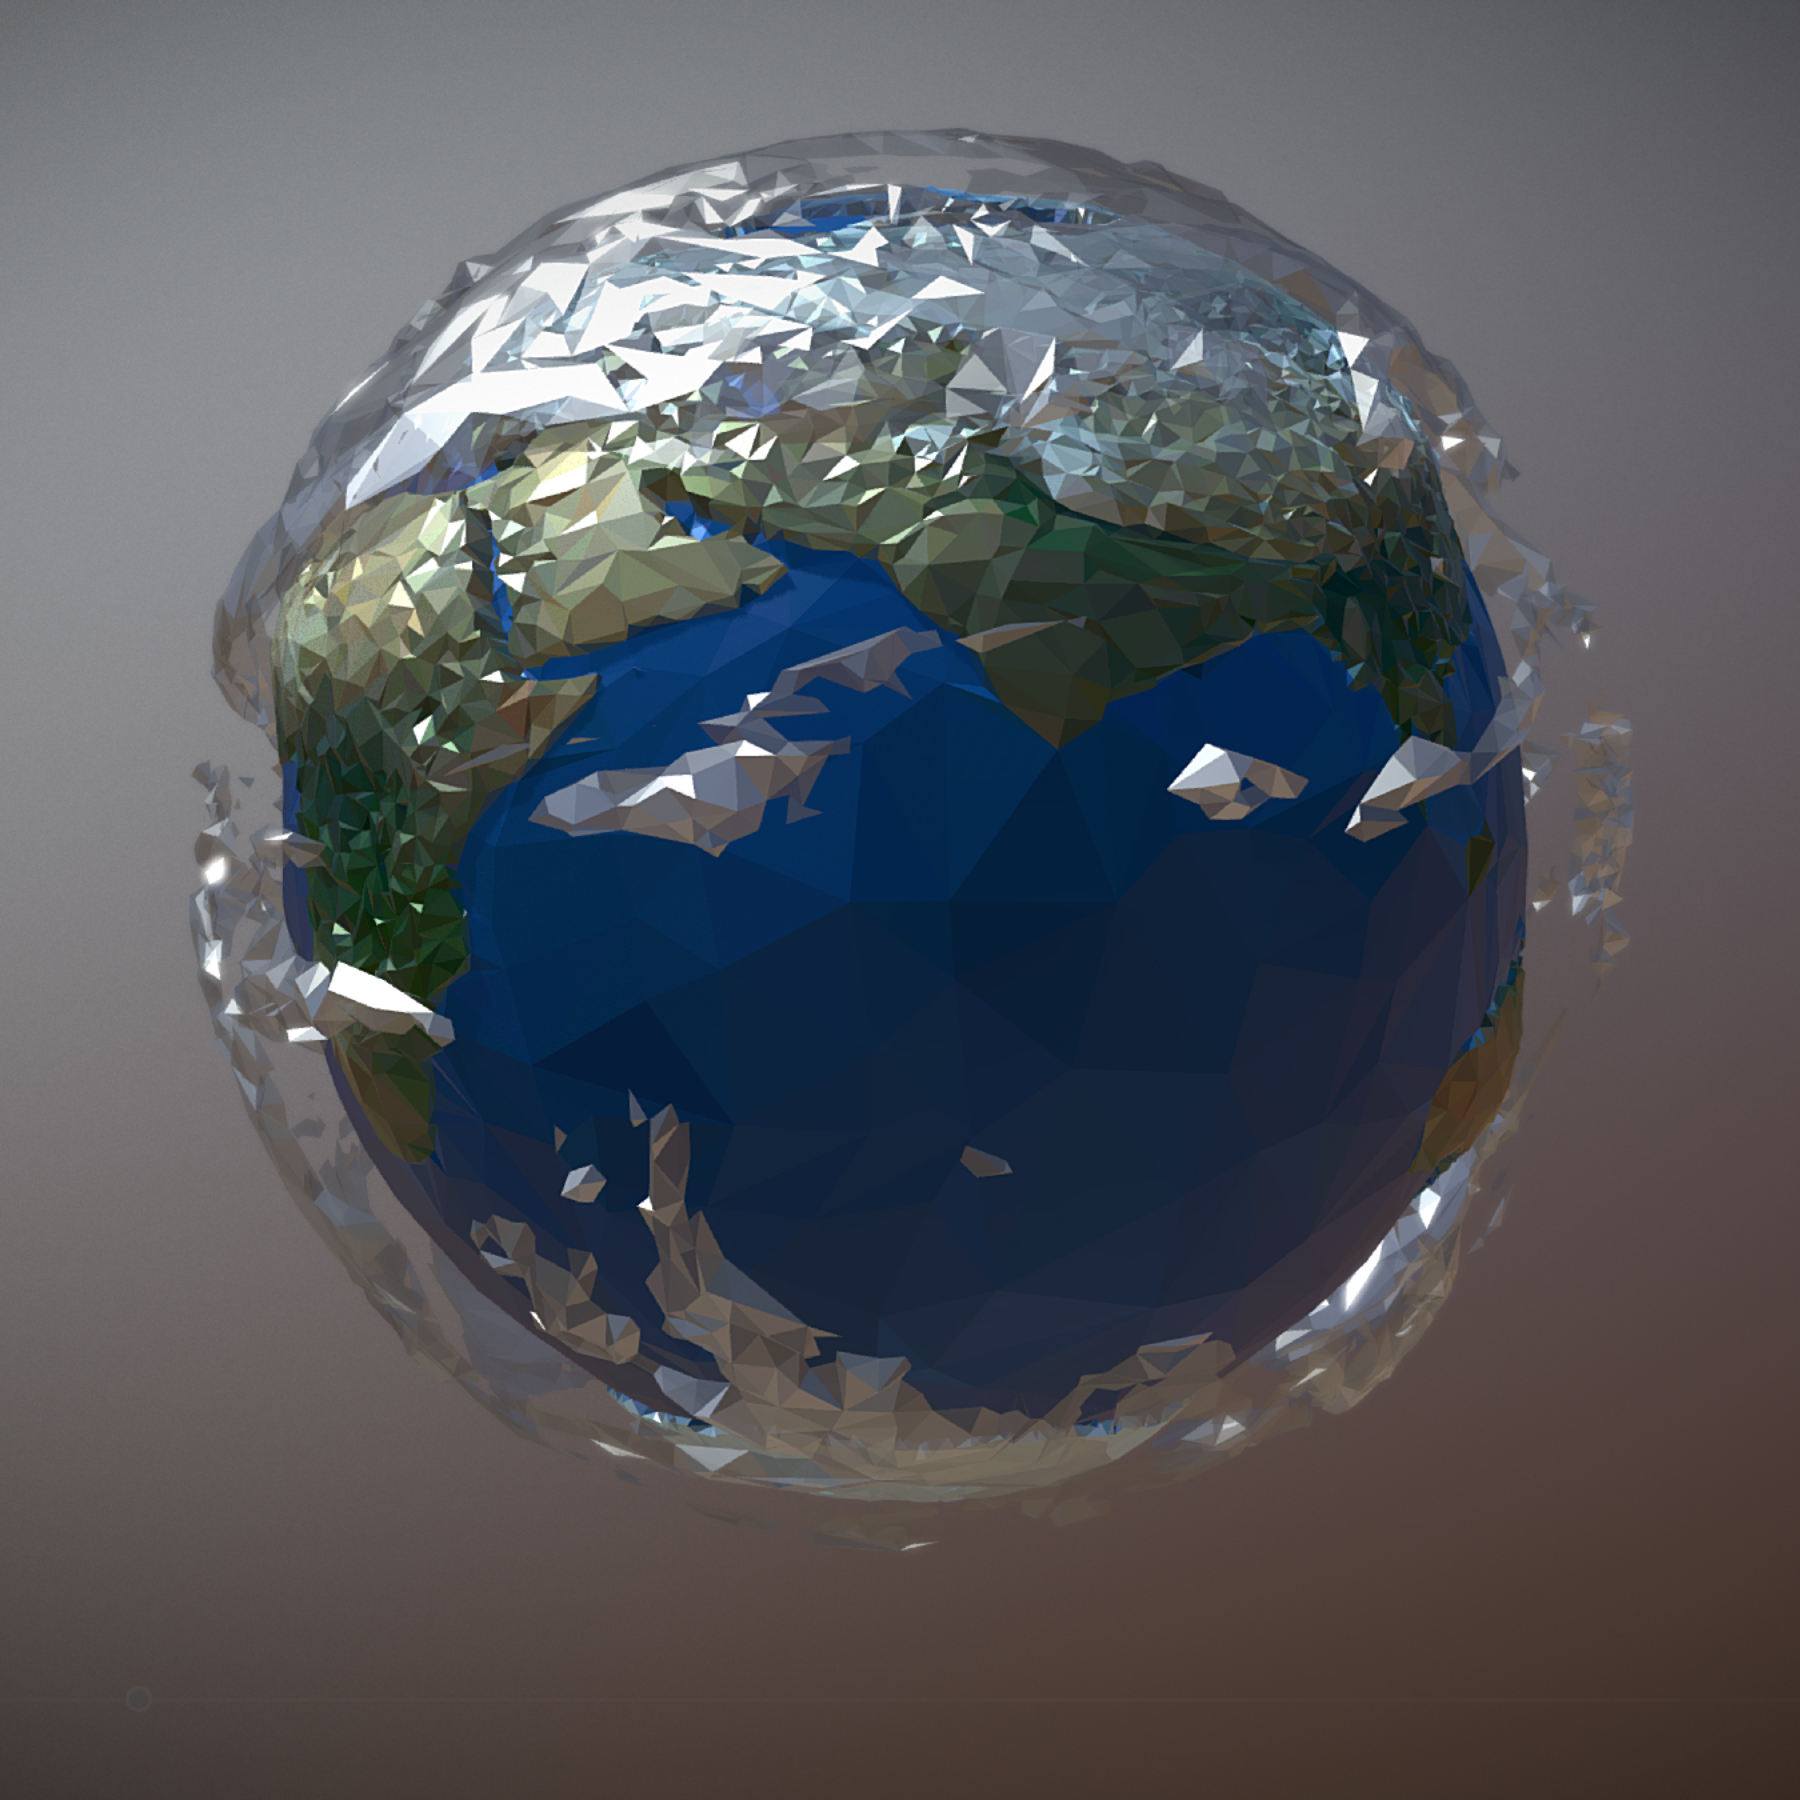 animated planet earth 3d model 3ds max fbx ma mb tga targa icb vda vst pix obj 271053